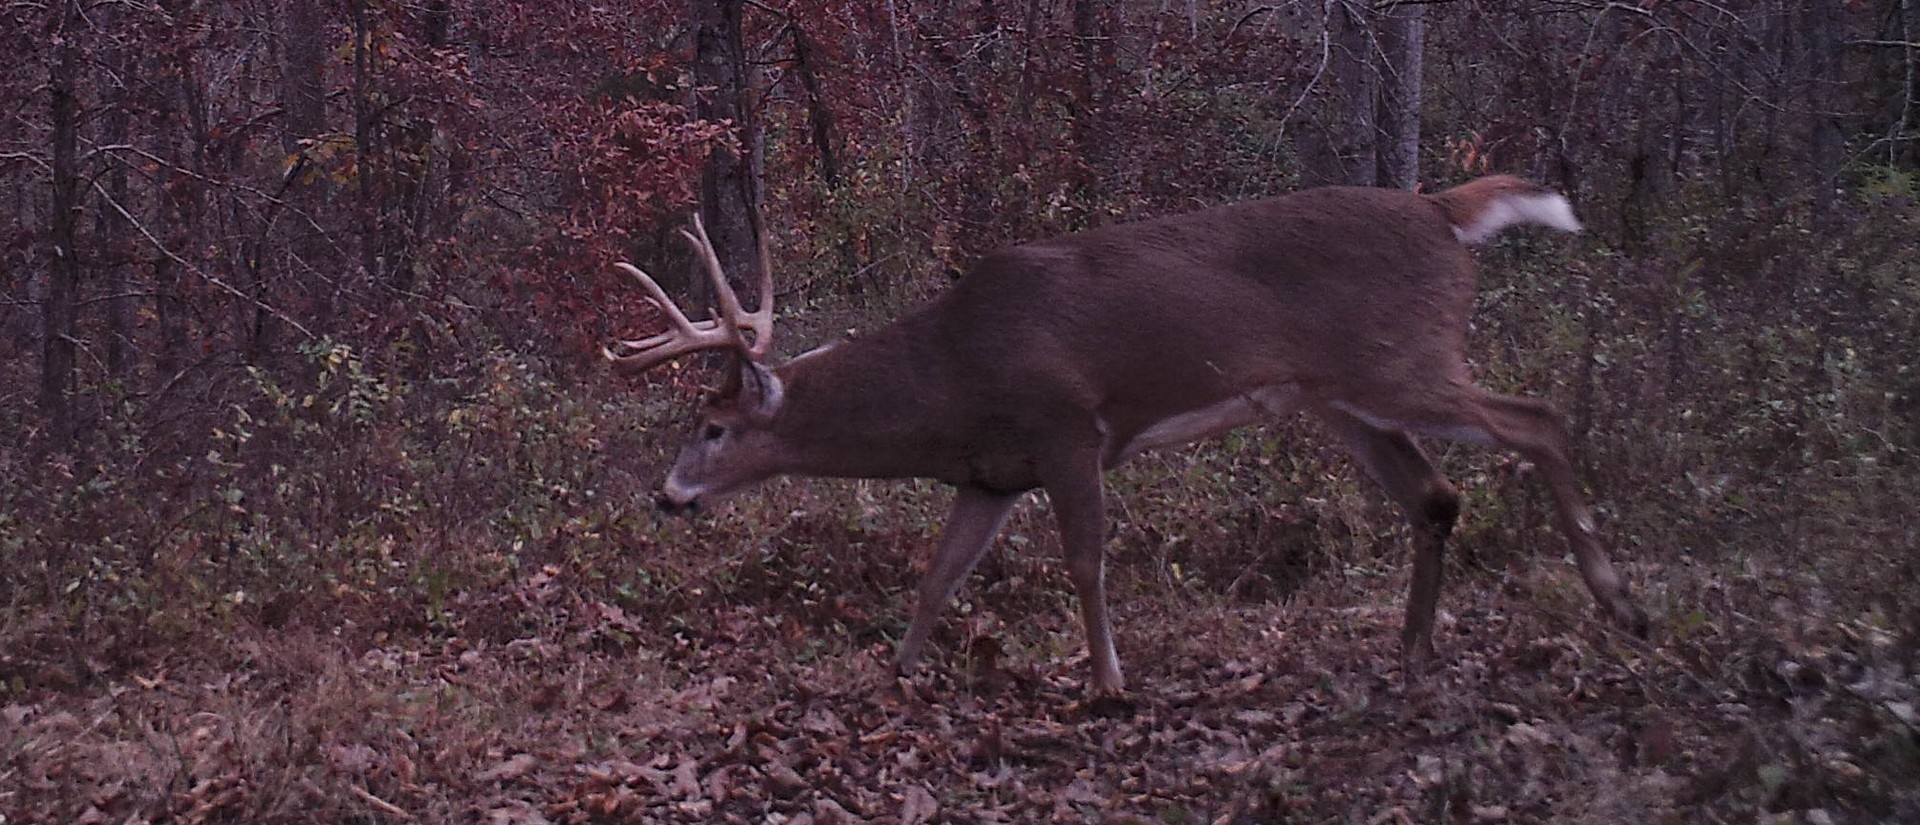 2016 Rut Predictions – Could It Be Another Late Whitetail Deer Rut? | Wired To Hunt-2021 Rut Forecast For Pa